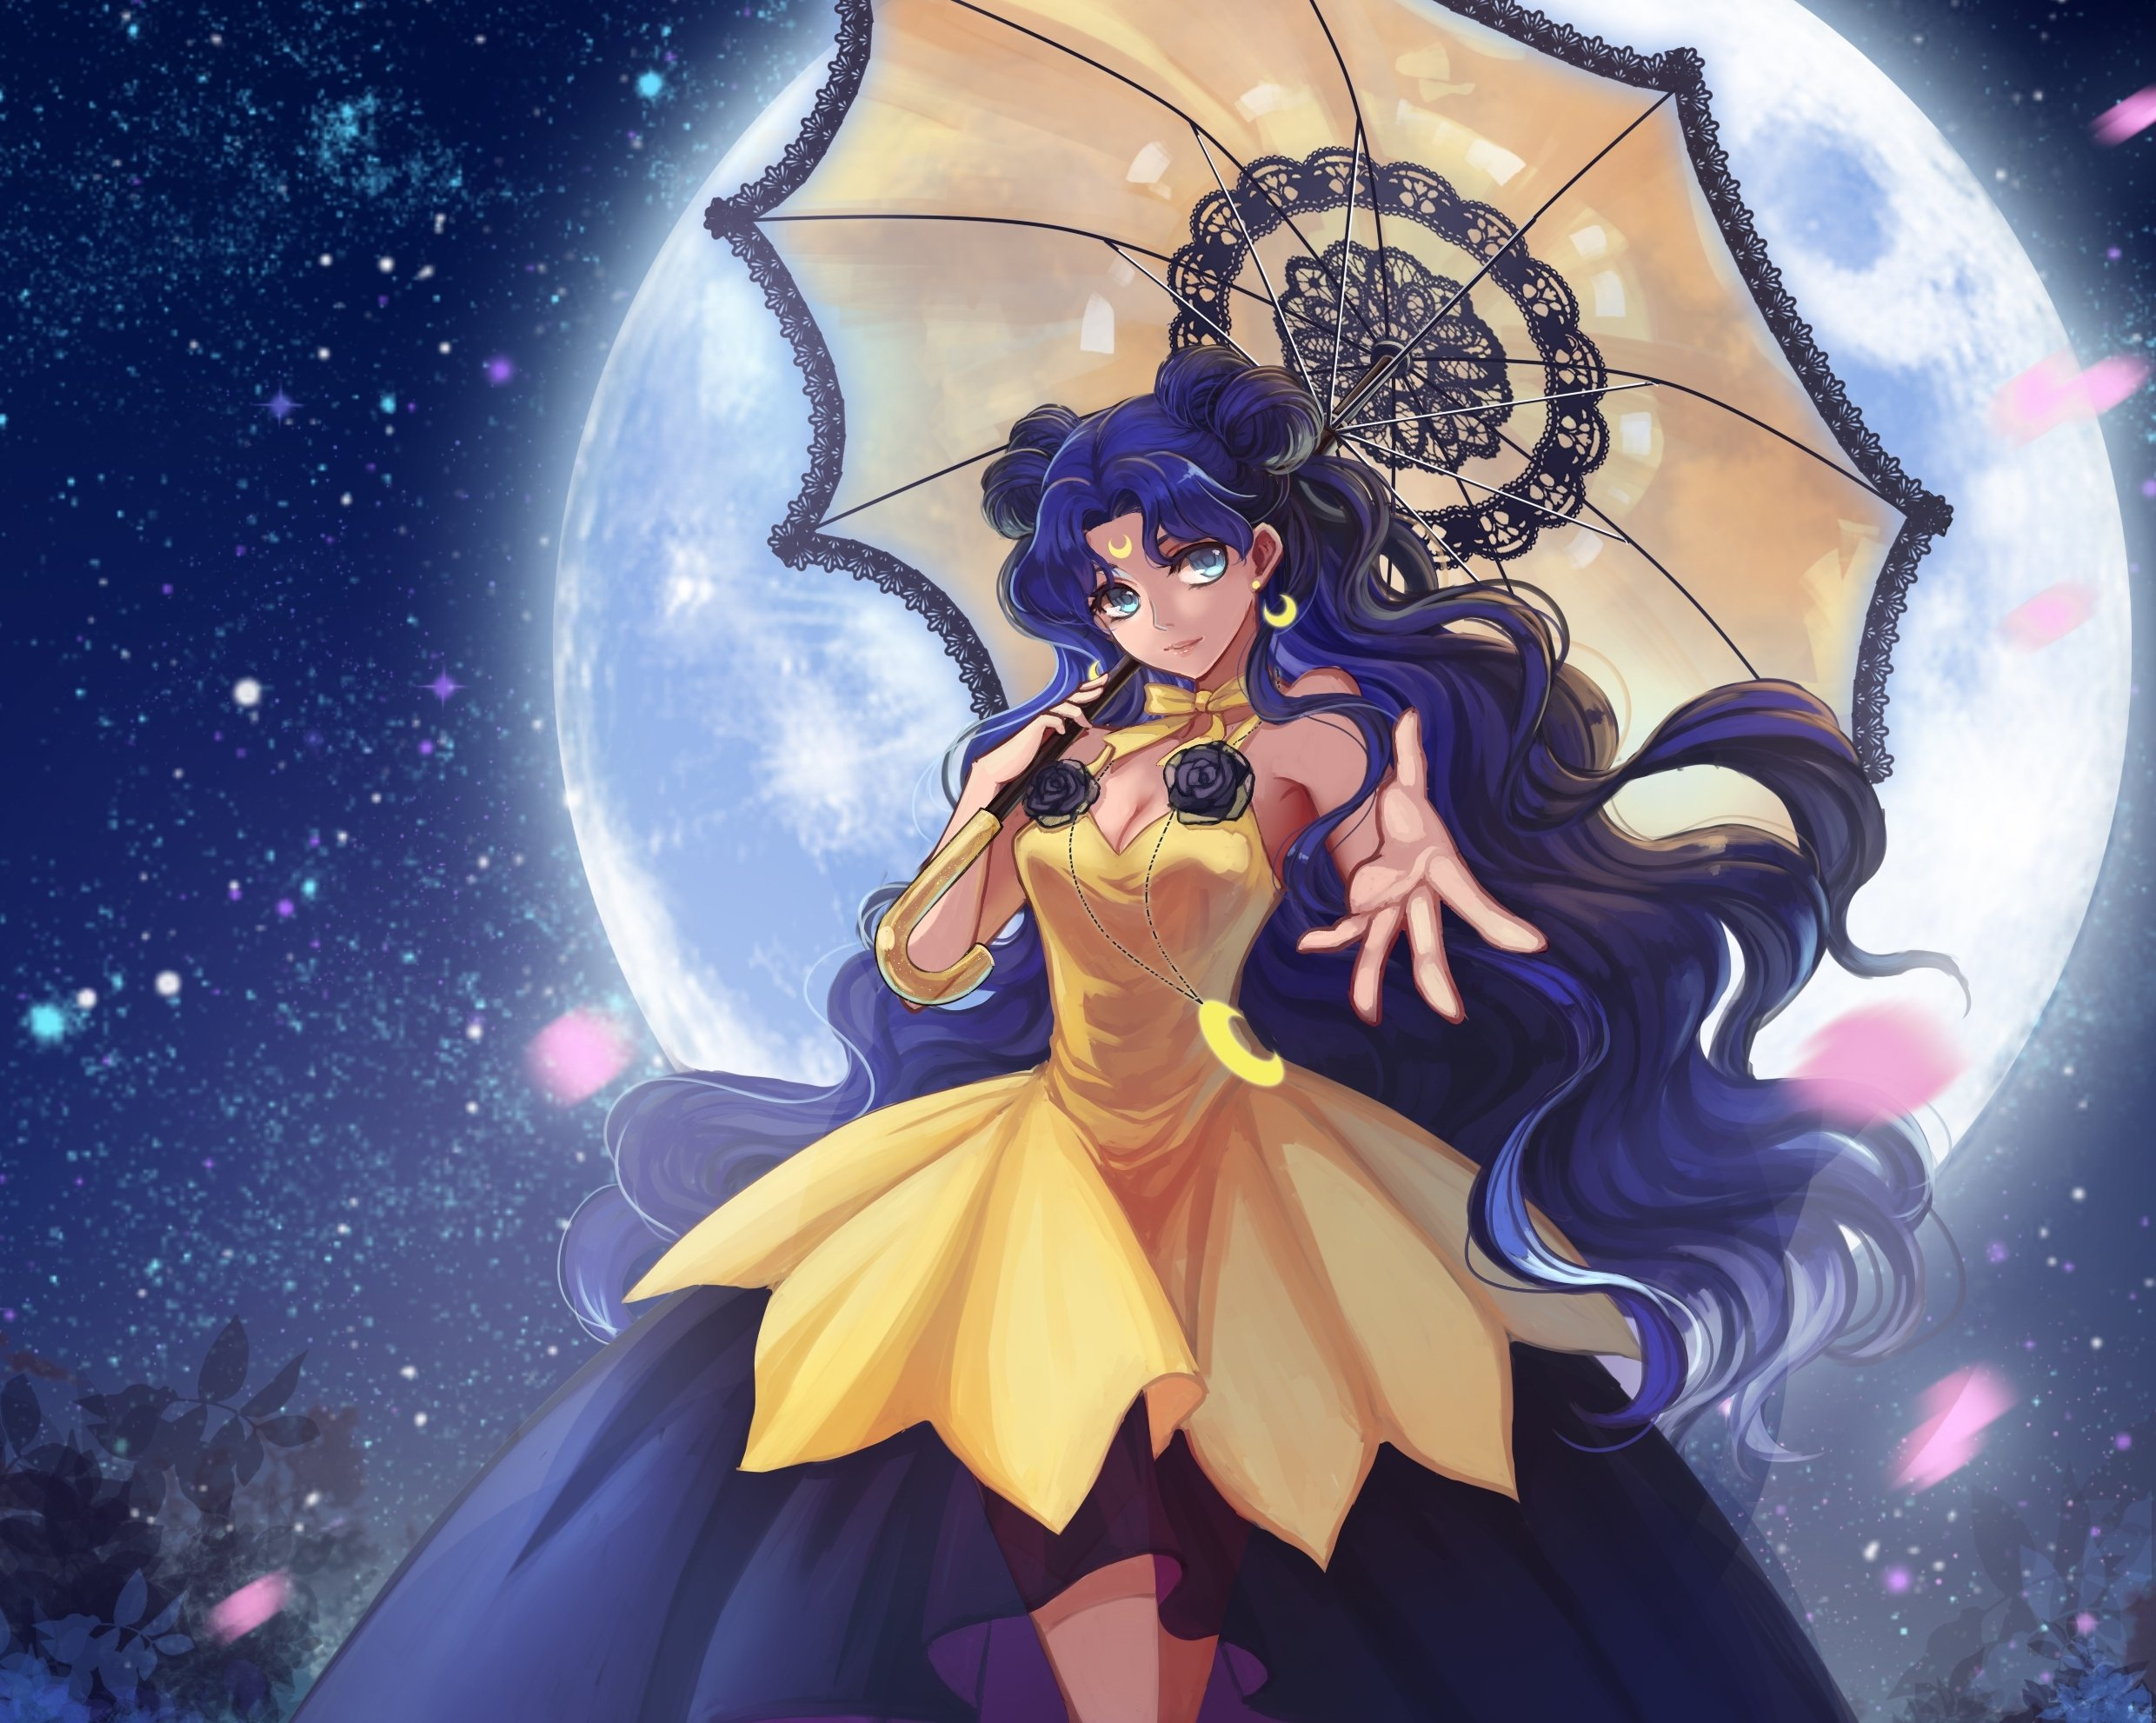 Cute Girl Wallpaper Com Sailor Moon Dress Sky Stars Umbrella Anime Series Girl